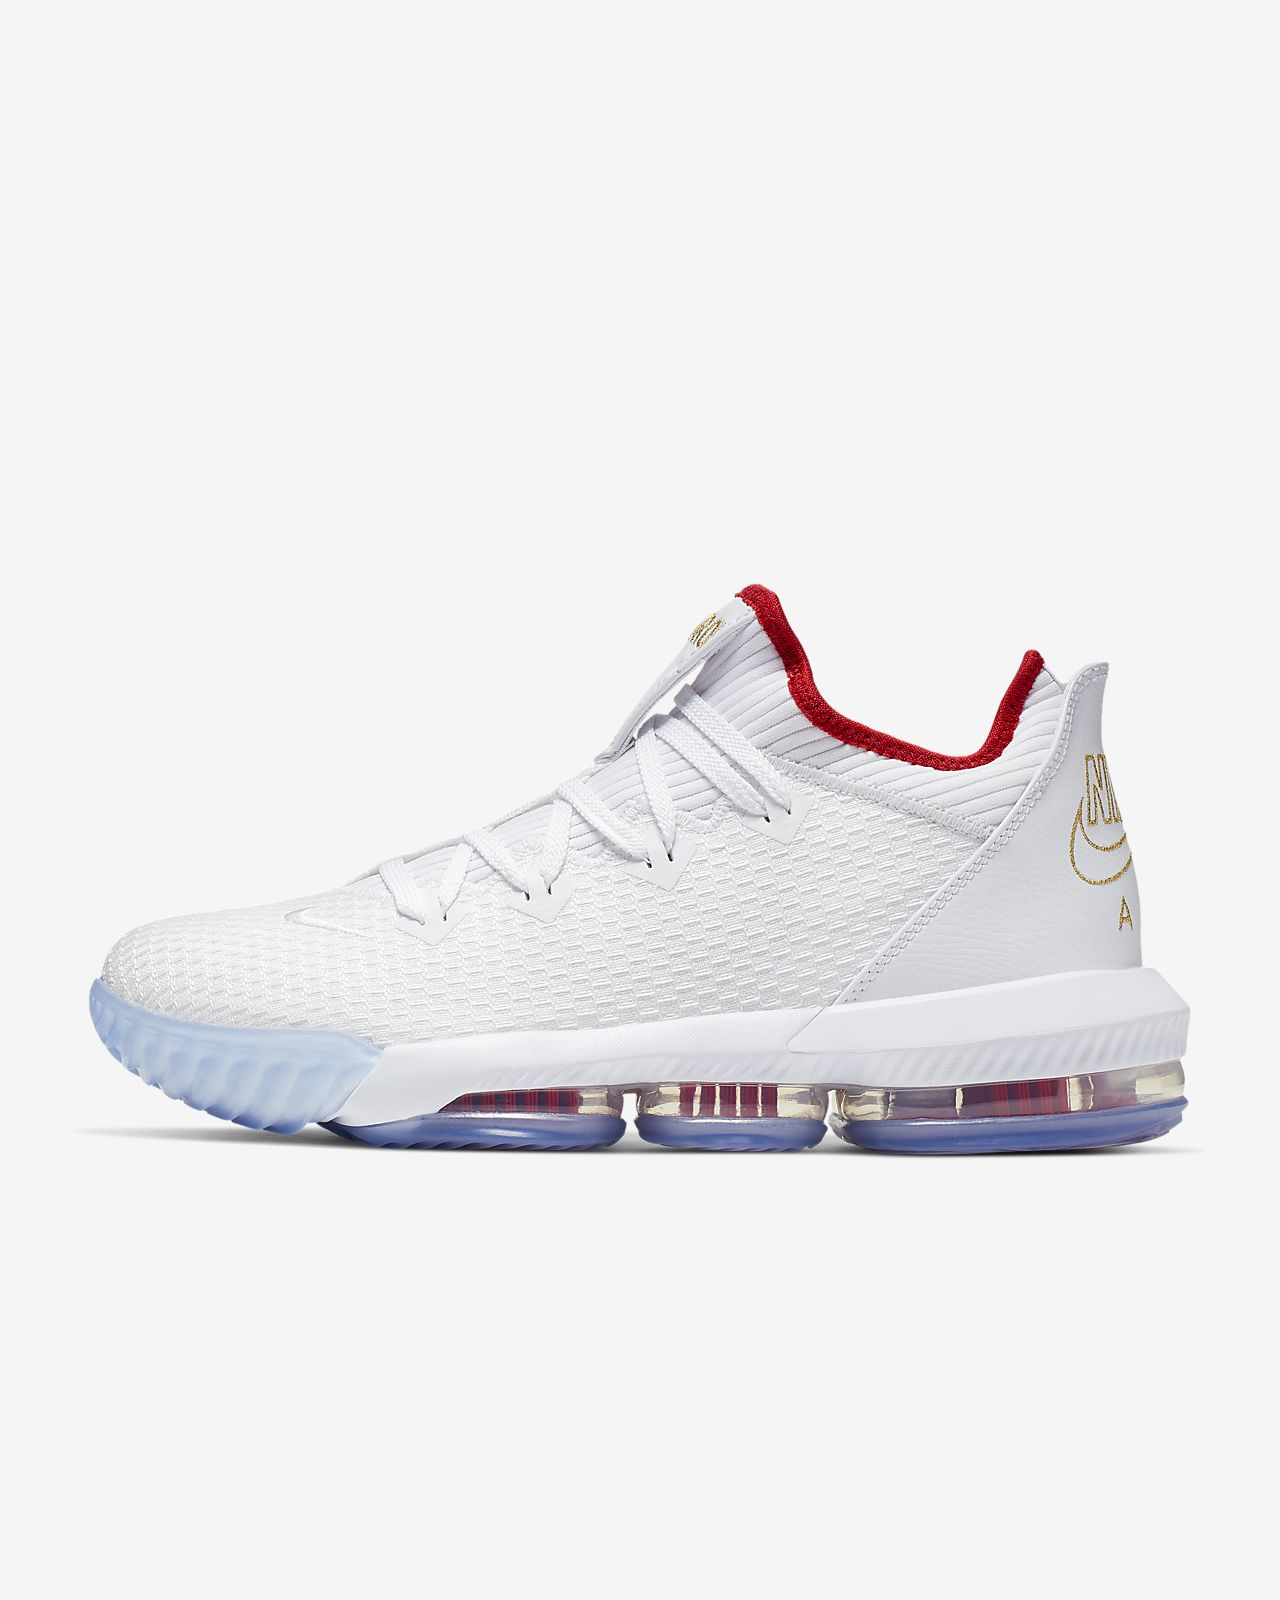 Chaussure de basketball LeBron 16 Low